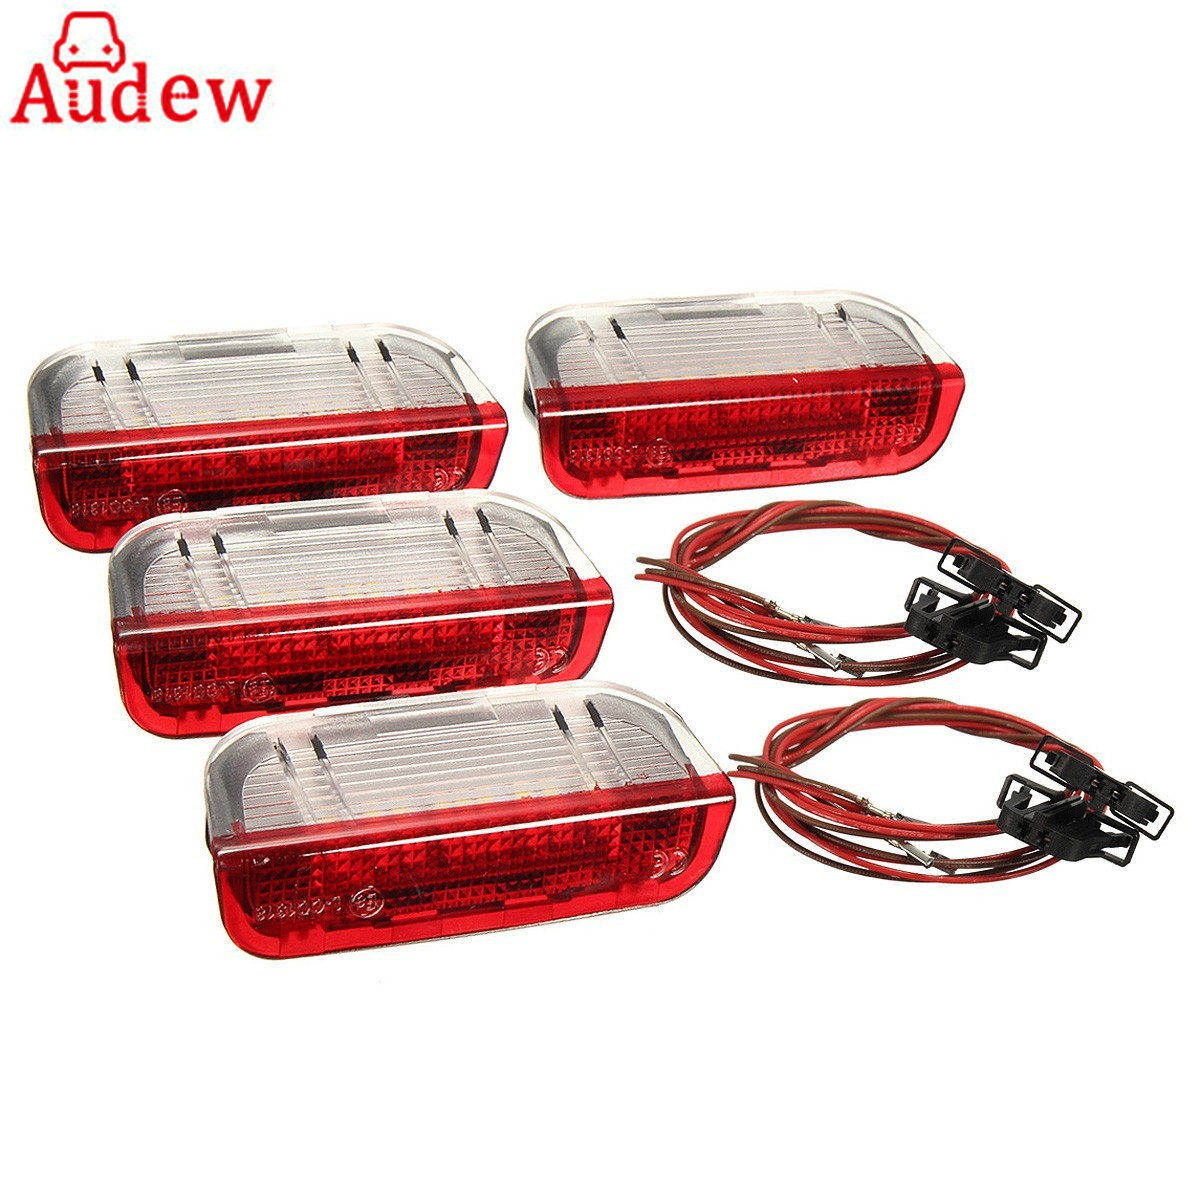 цены 4Pcs Car Door Warning Light With Cable For VW/Volkswagen /Golf 5 Golf 6 Jetta MK5 MK6 CC /Tiguan /Passat B6